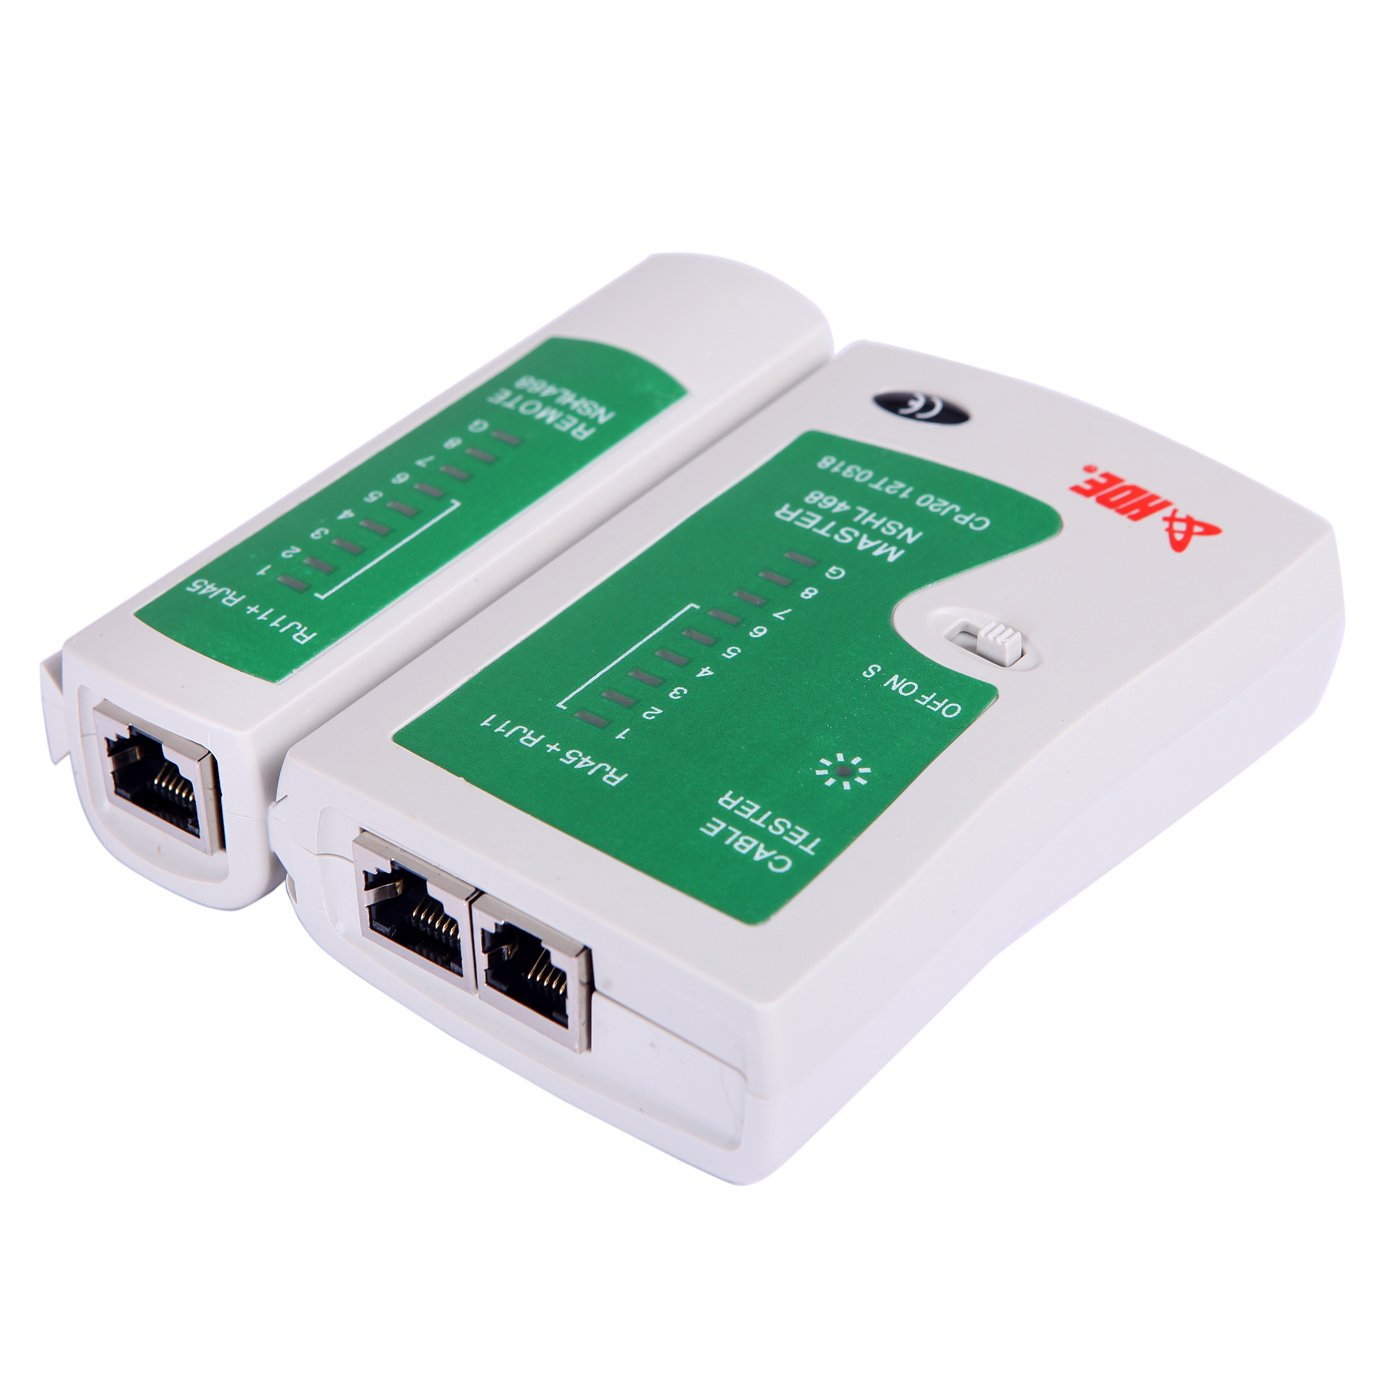 Hde Rj45 Rj11 Rj12 Cat5 Cat6 Utp Network Cable Tester To Ethernet Wiring Diagram For Lan Phone Wire Test Tool Sports Outdoors